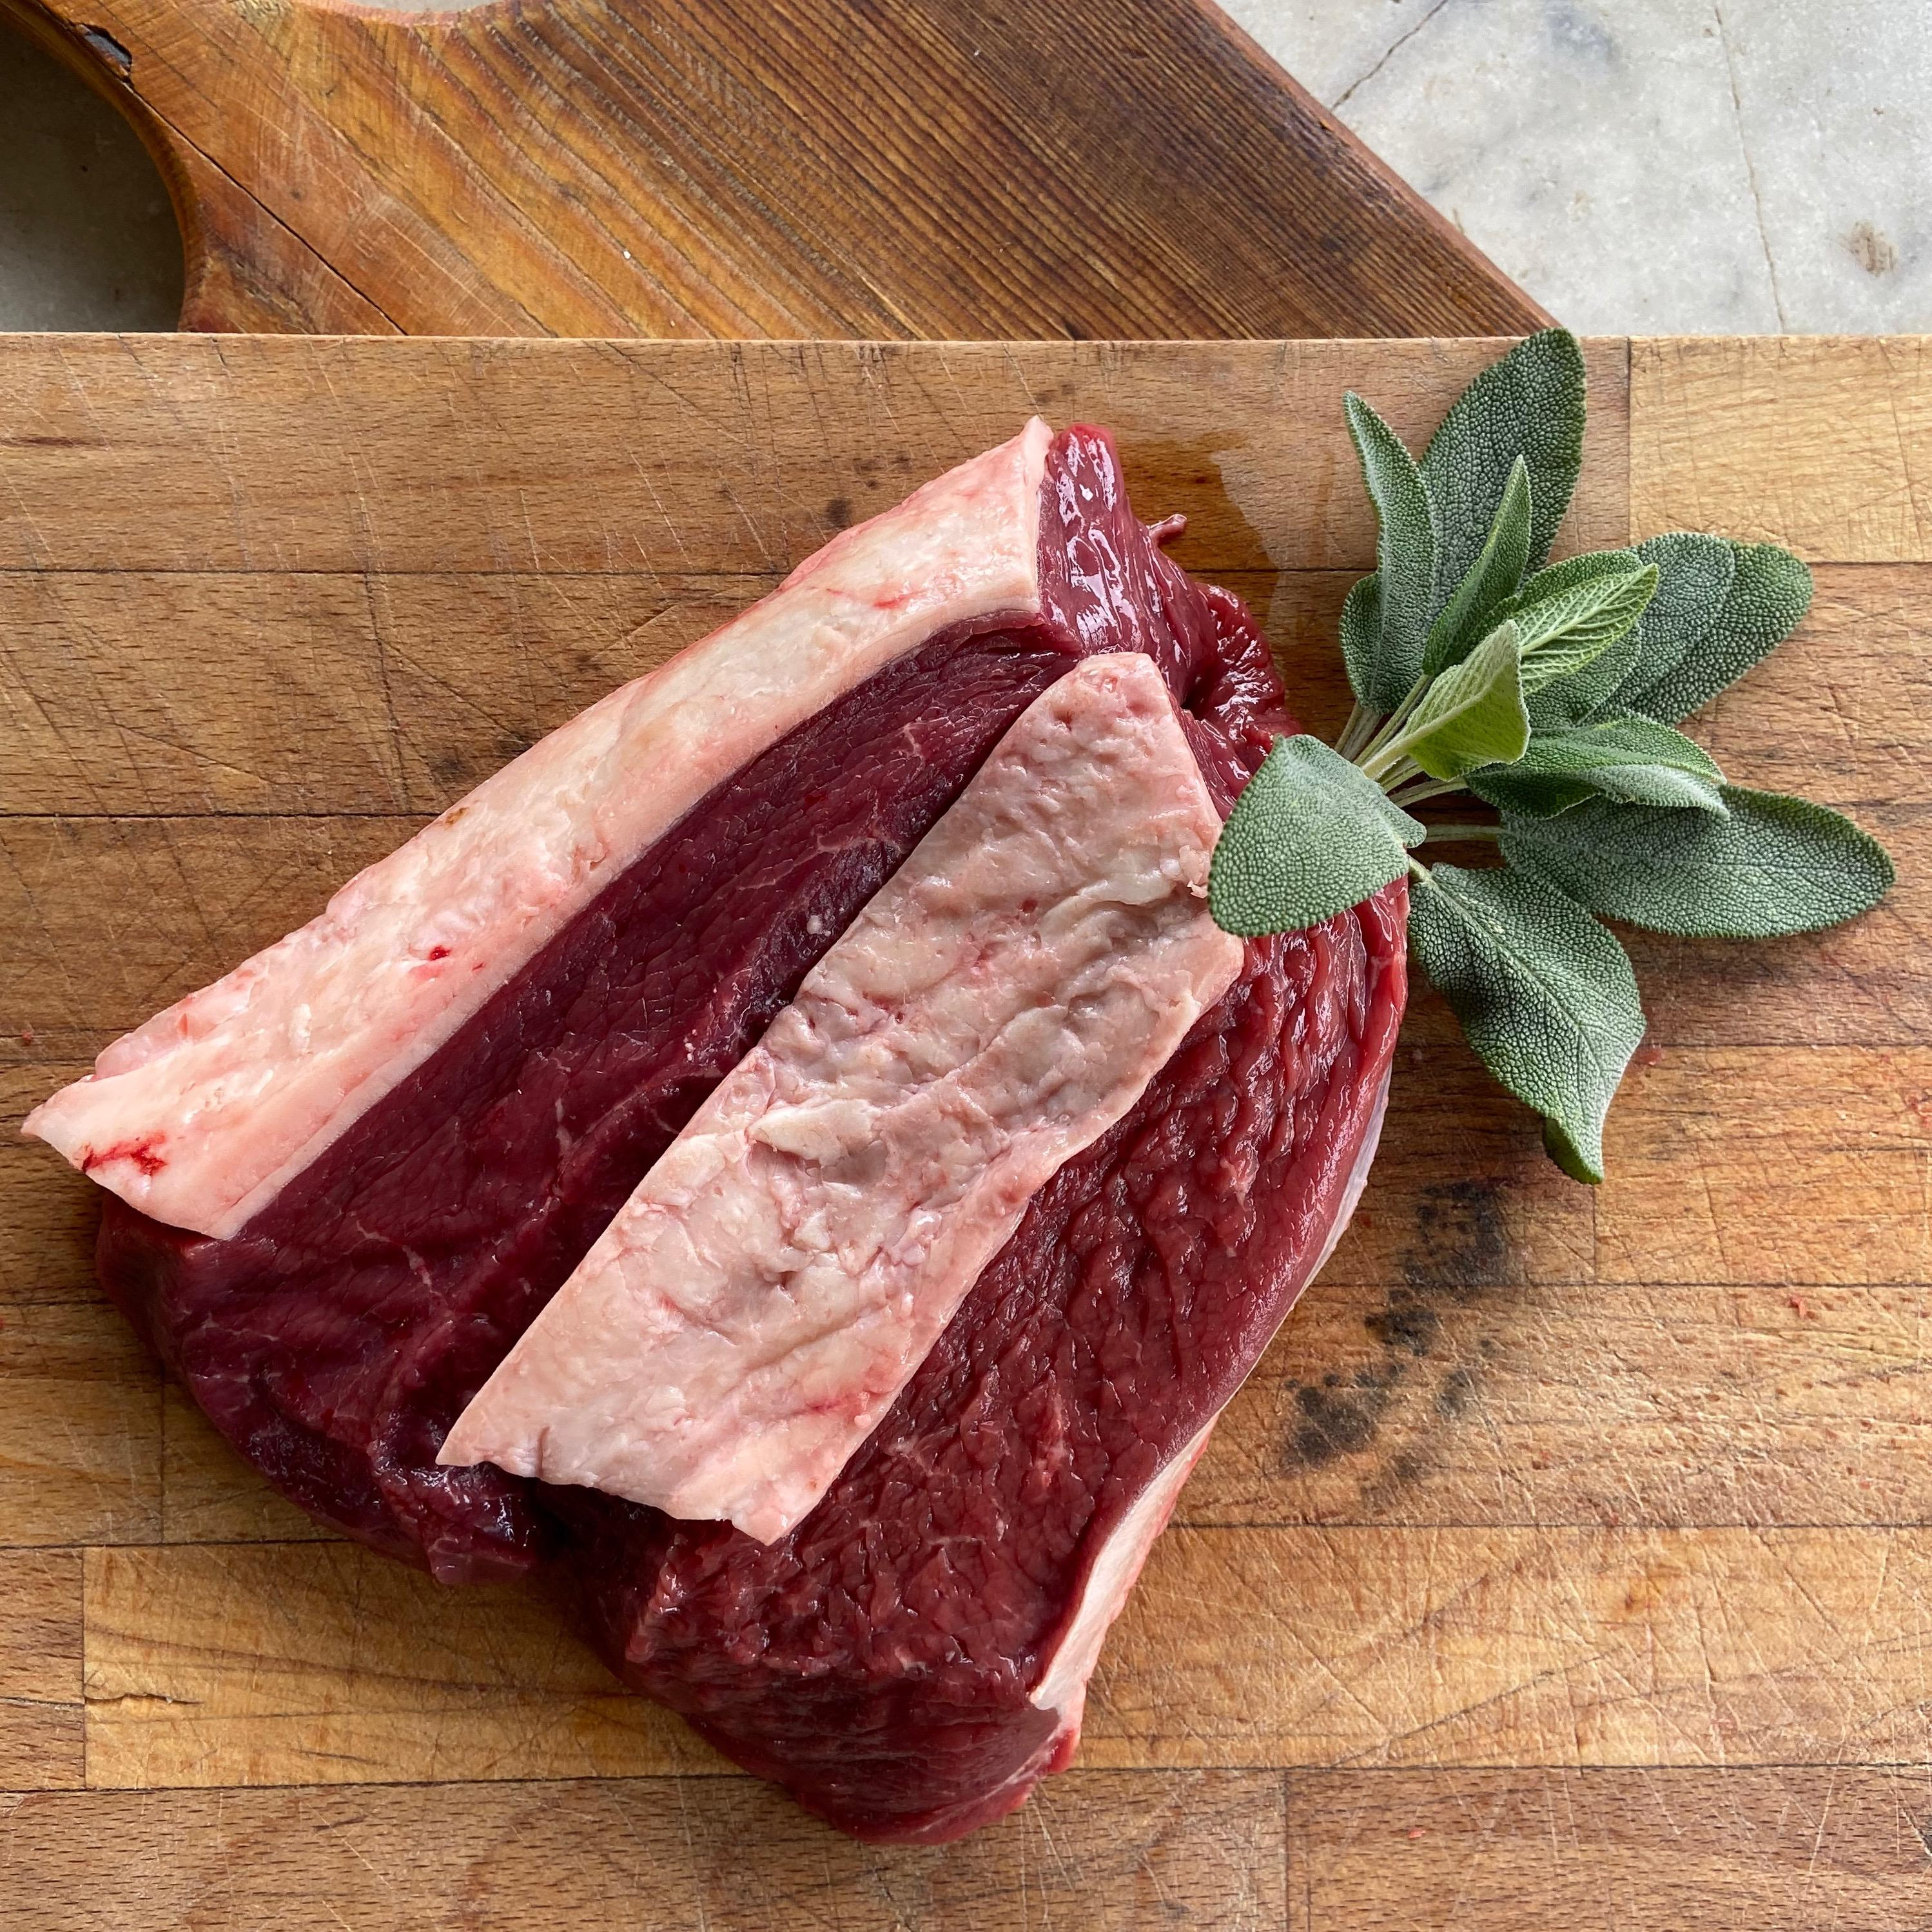 Organic, 100% grass fed steak box, picanha steak